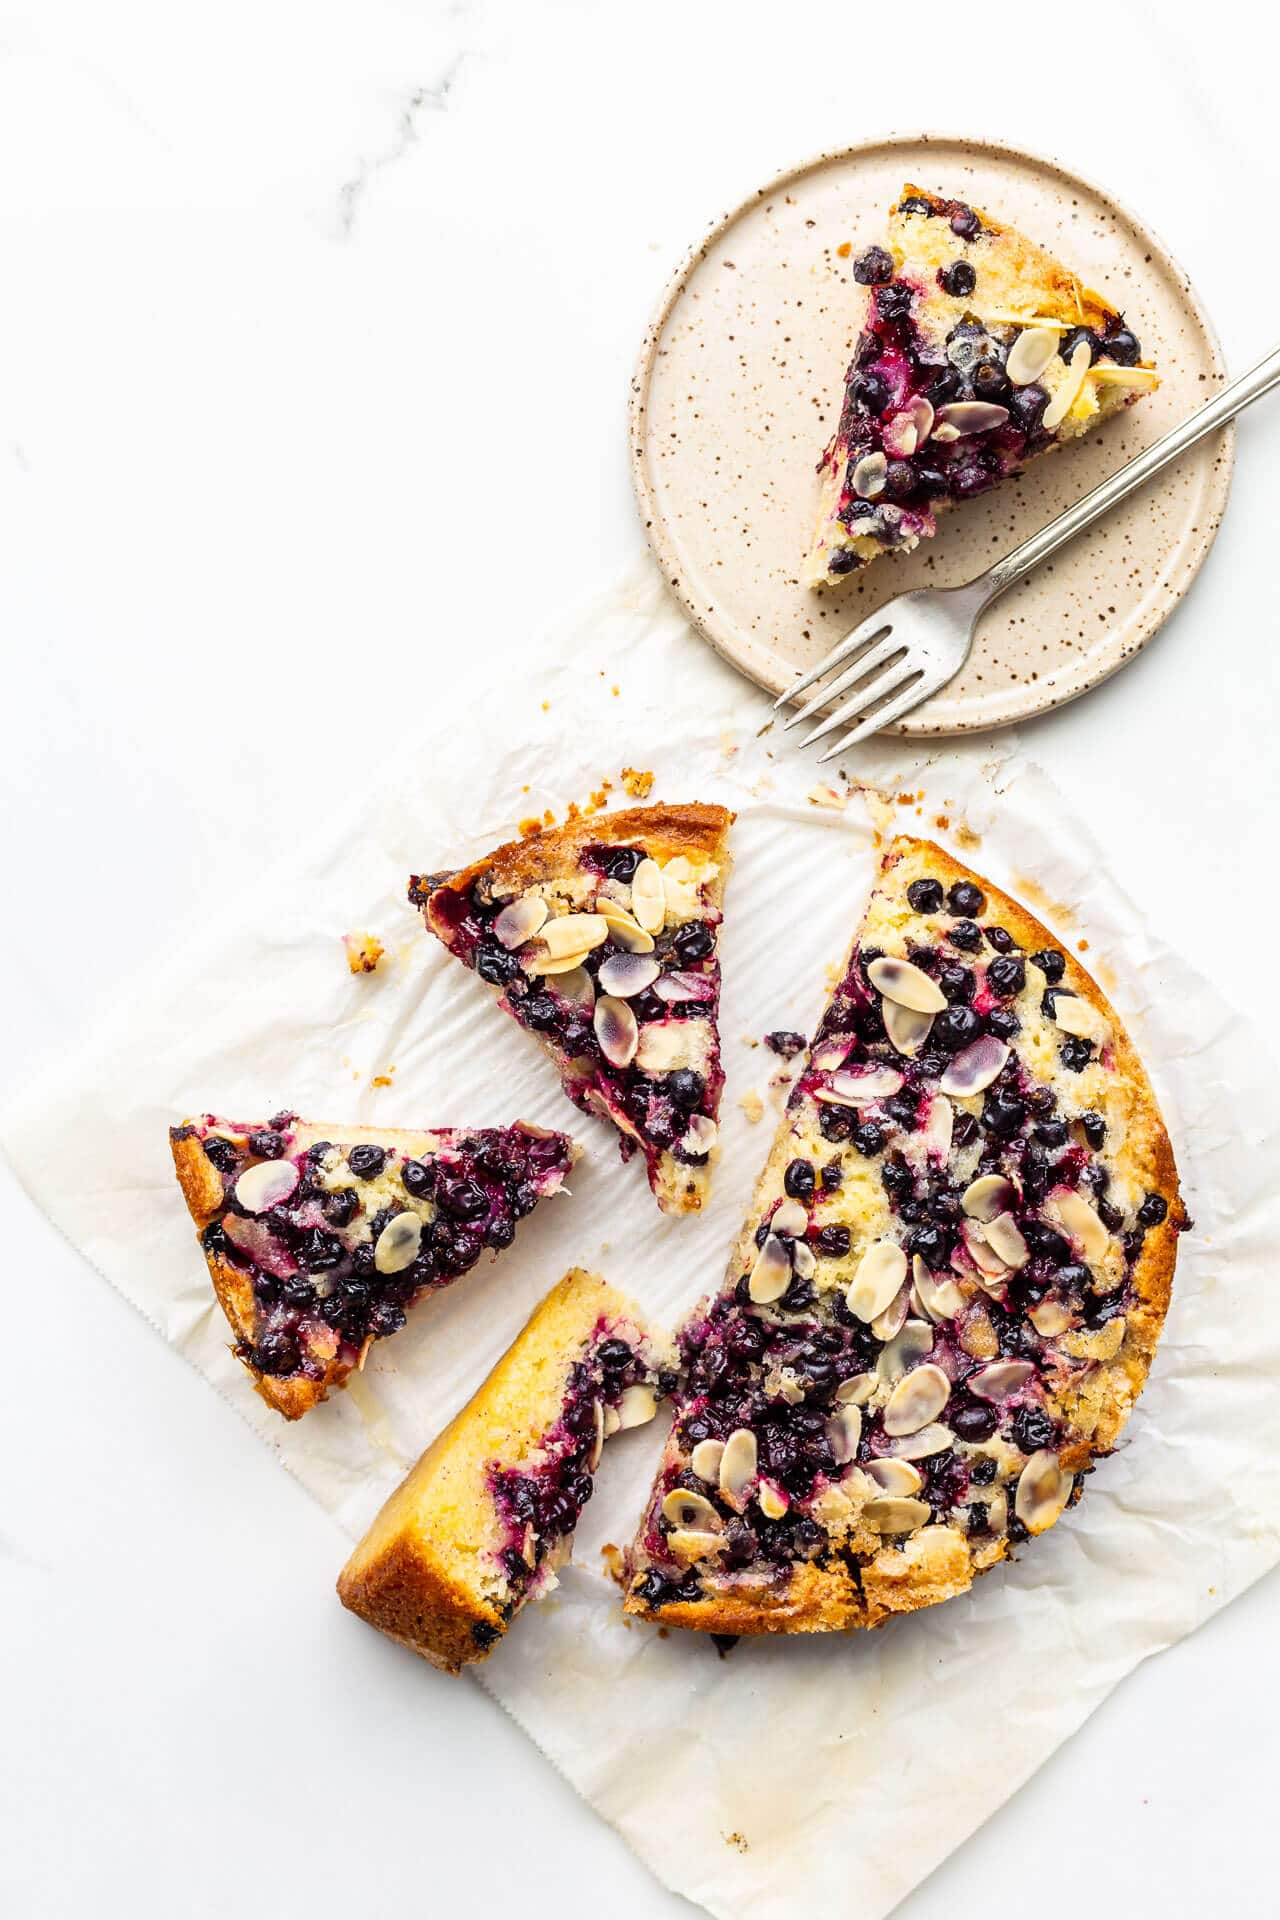 Black currant cake sliced into pieces with one on a speckled ceramic plate with a fork